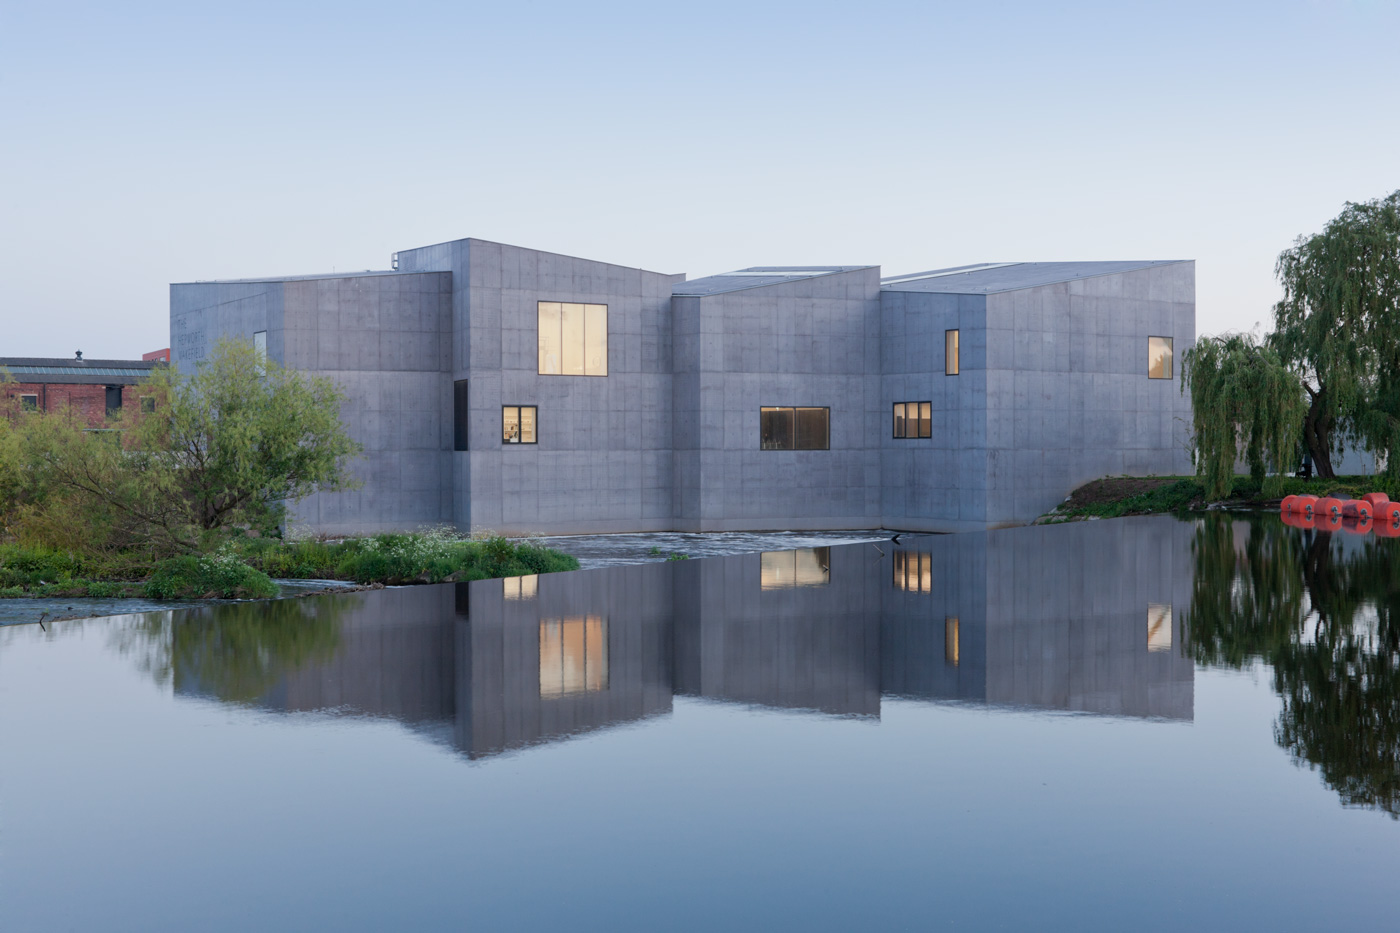 David Chipperfield Architects The Hepworth Wakefield